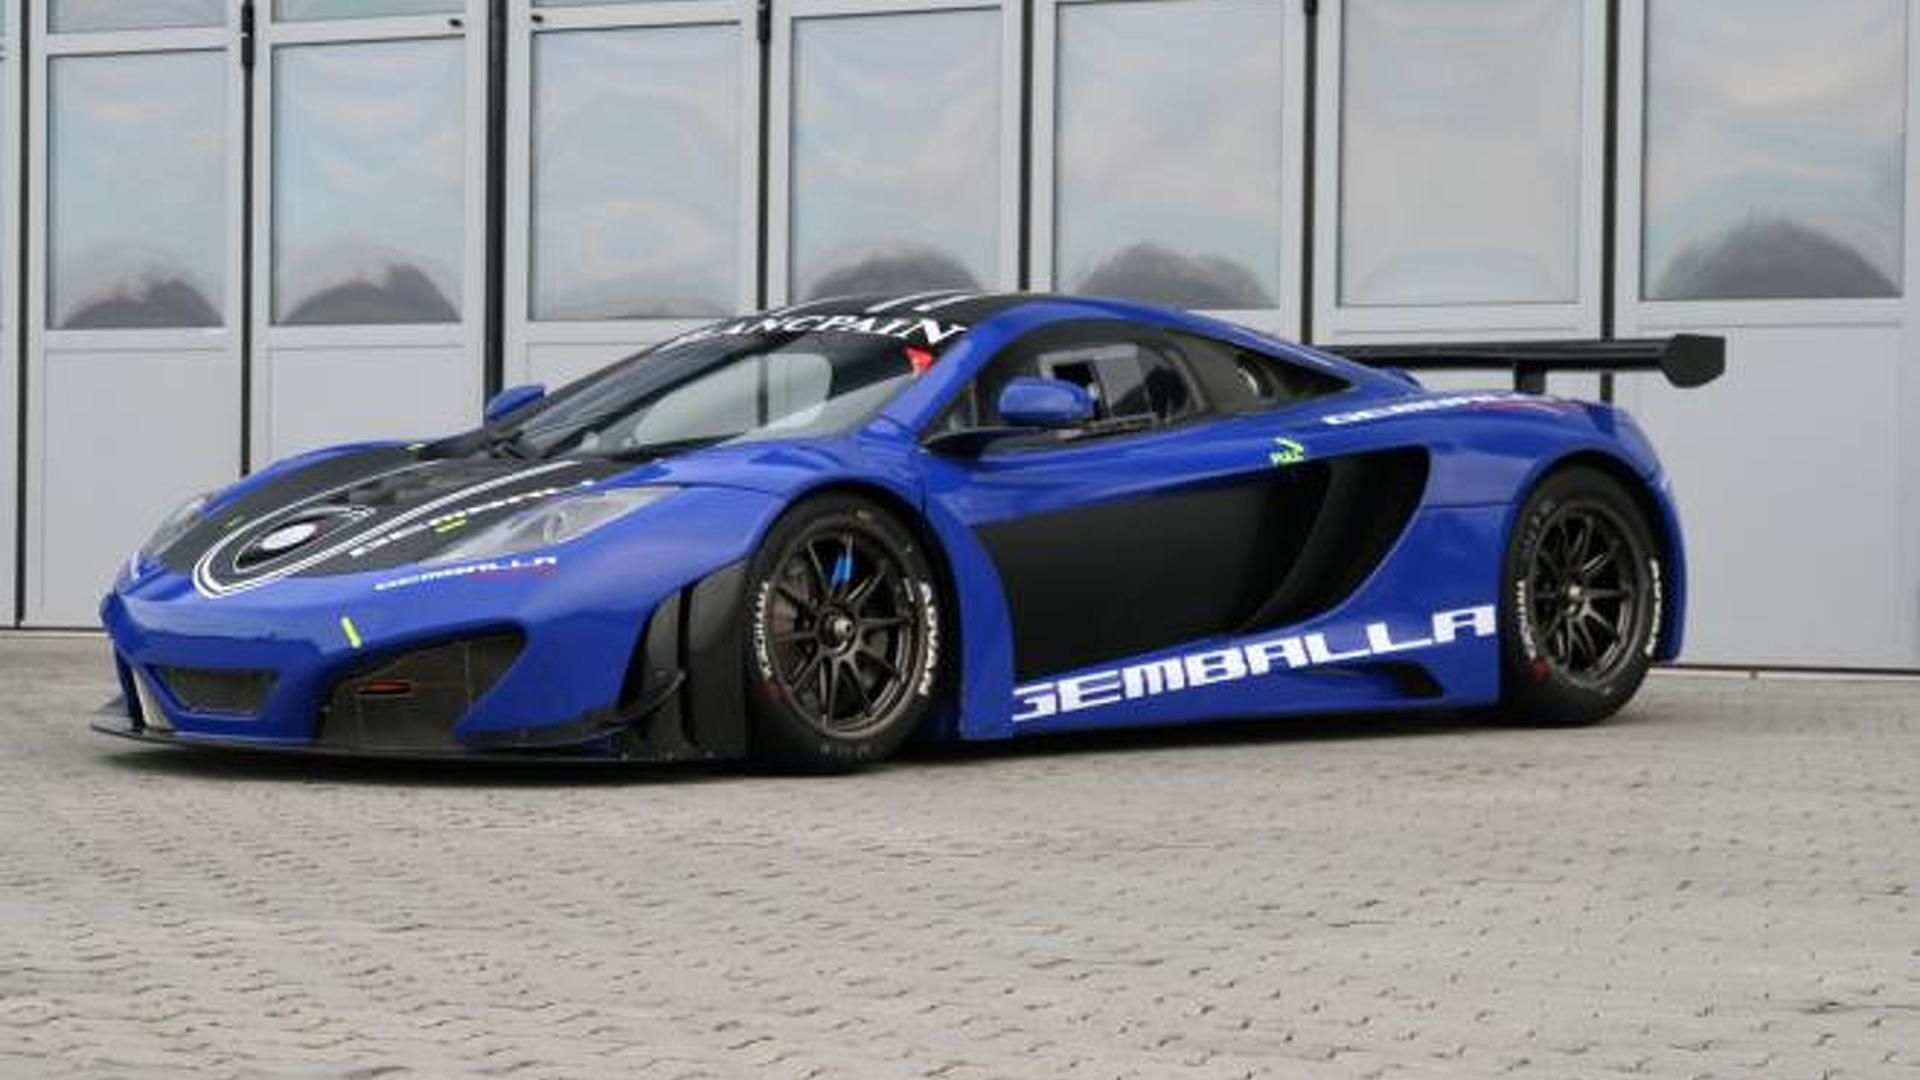 2012 mclaren mp4 12c gt3 by gemballa racing up for sale. Black Bedroom Furniture Sets. Home Design Ideas